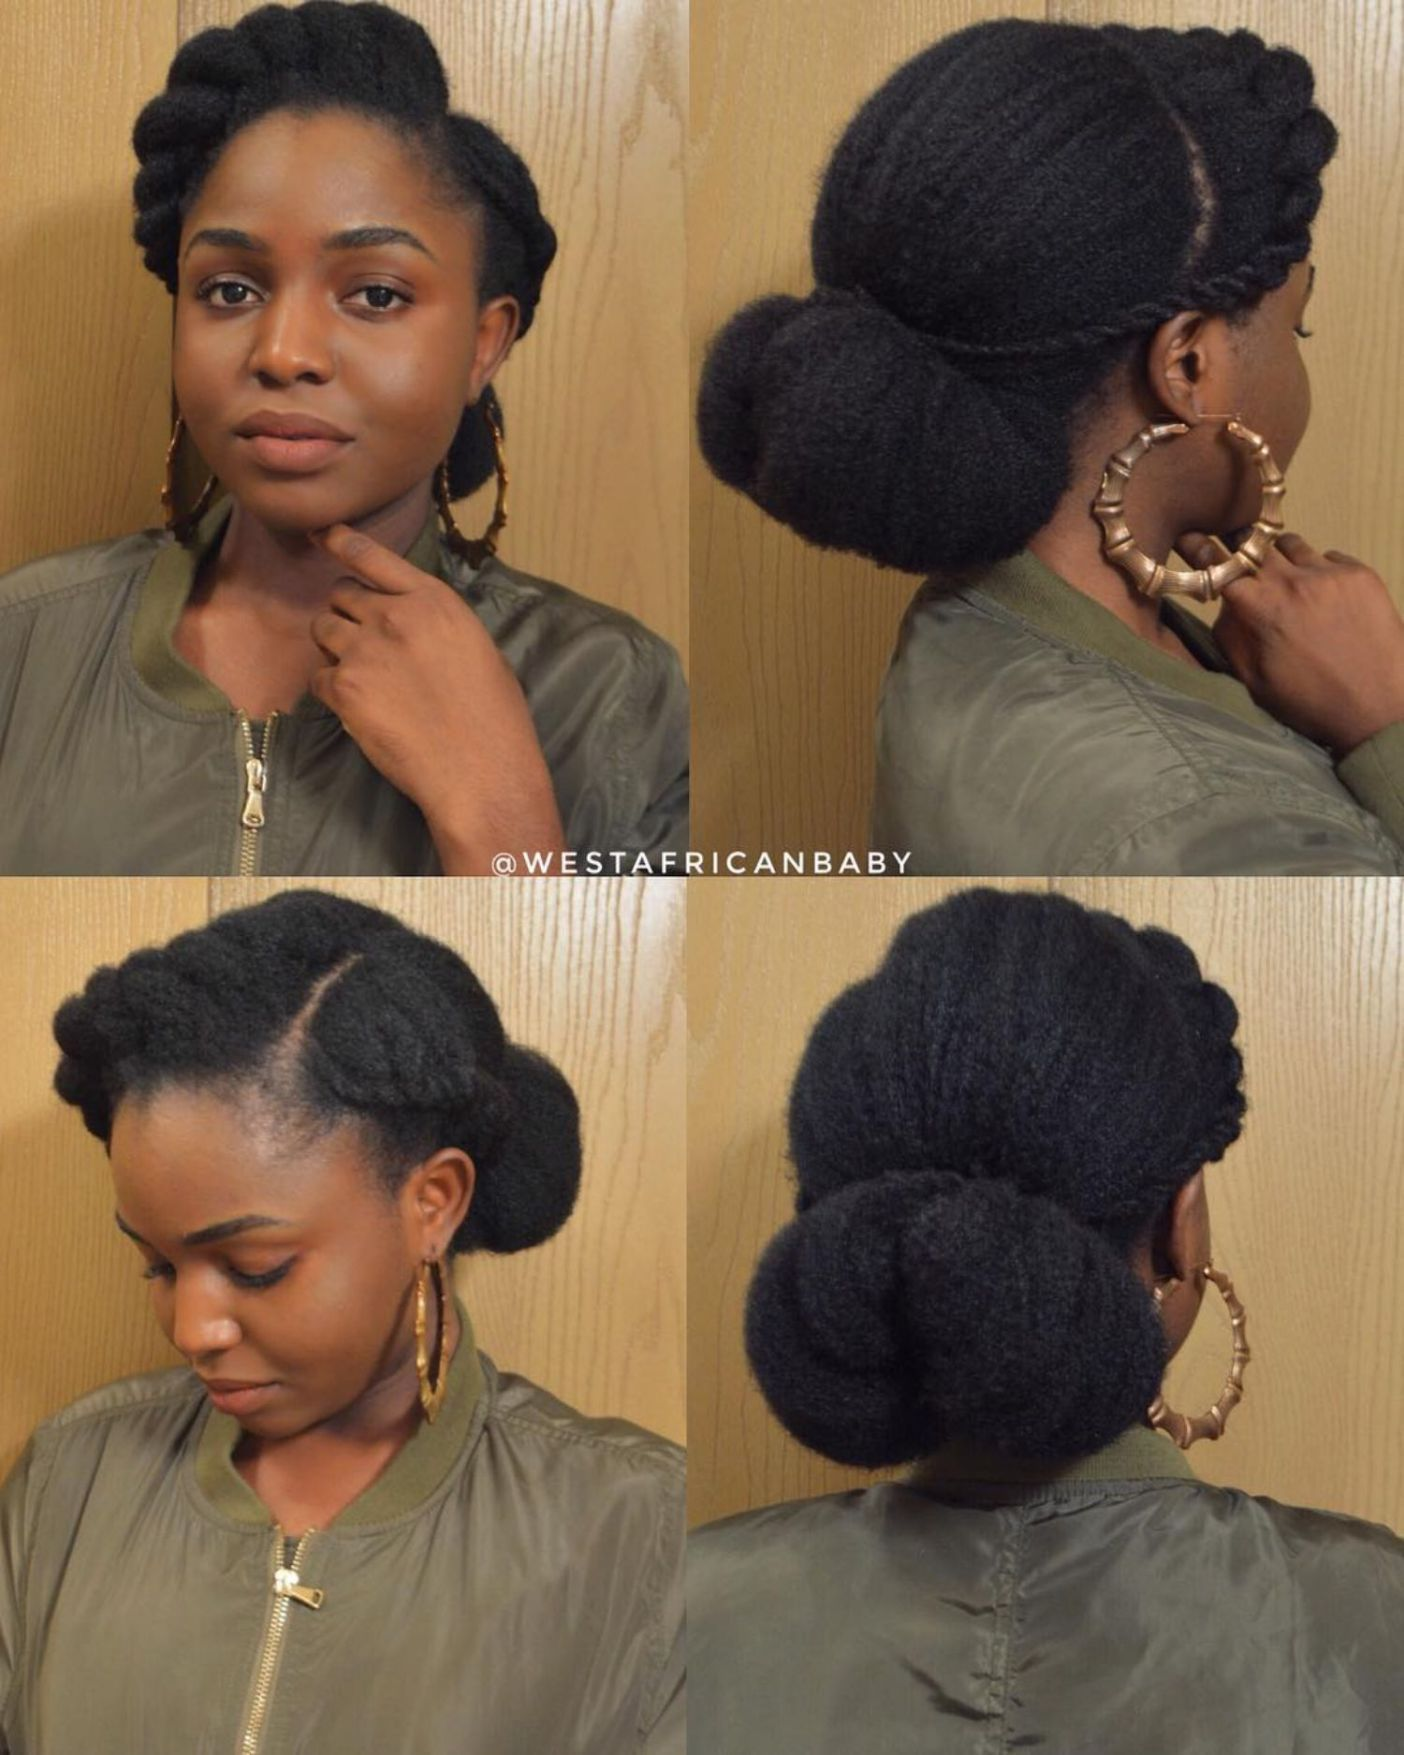 60 Easy And Showy Protective Hairstyles For Natural Hair Protective Hairstyles For Natural Hair Natural Hair Styles Easy Protective Hairstyles